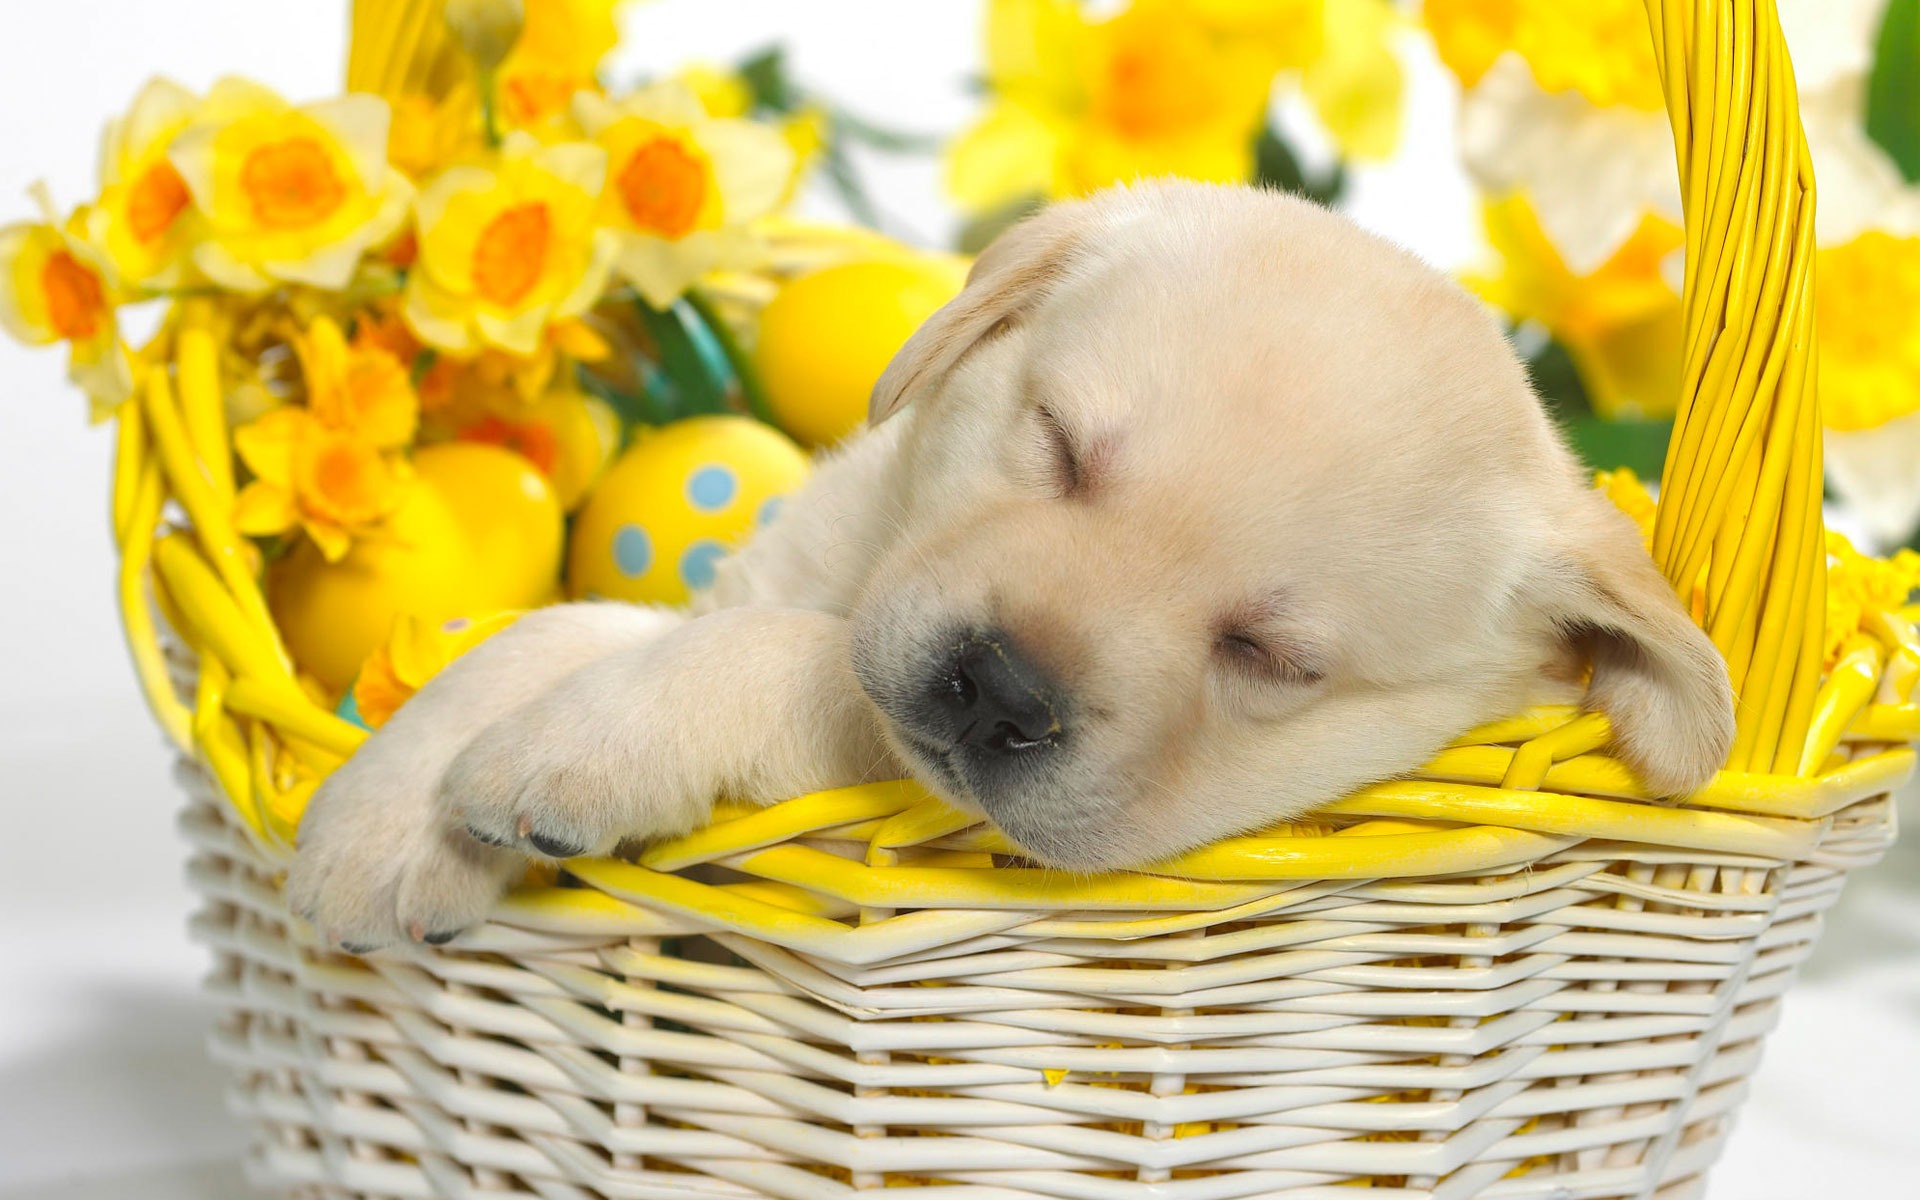 Springtime Snooze Wallpapers HD Wallpapers 1920x1200